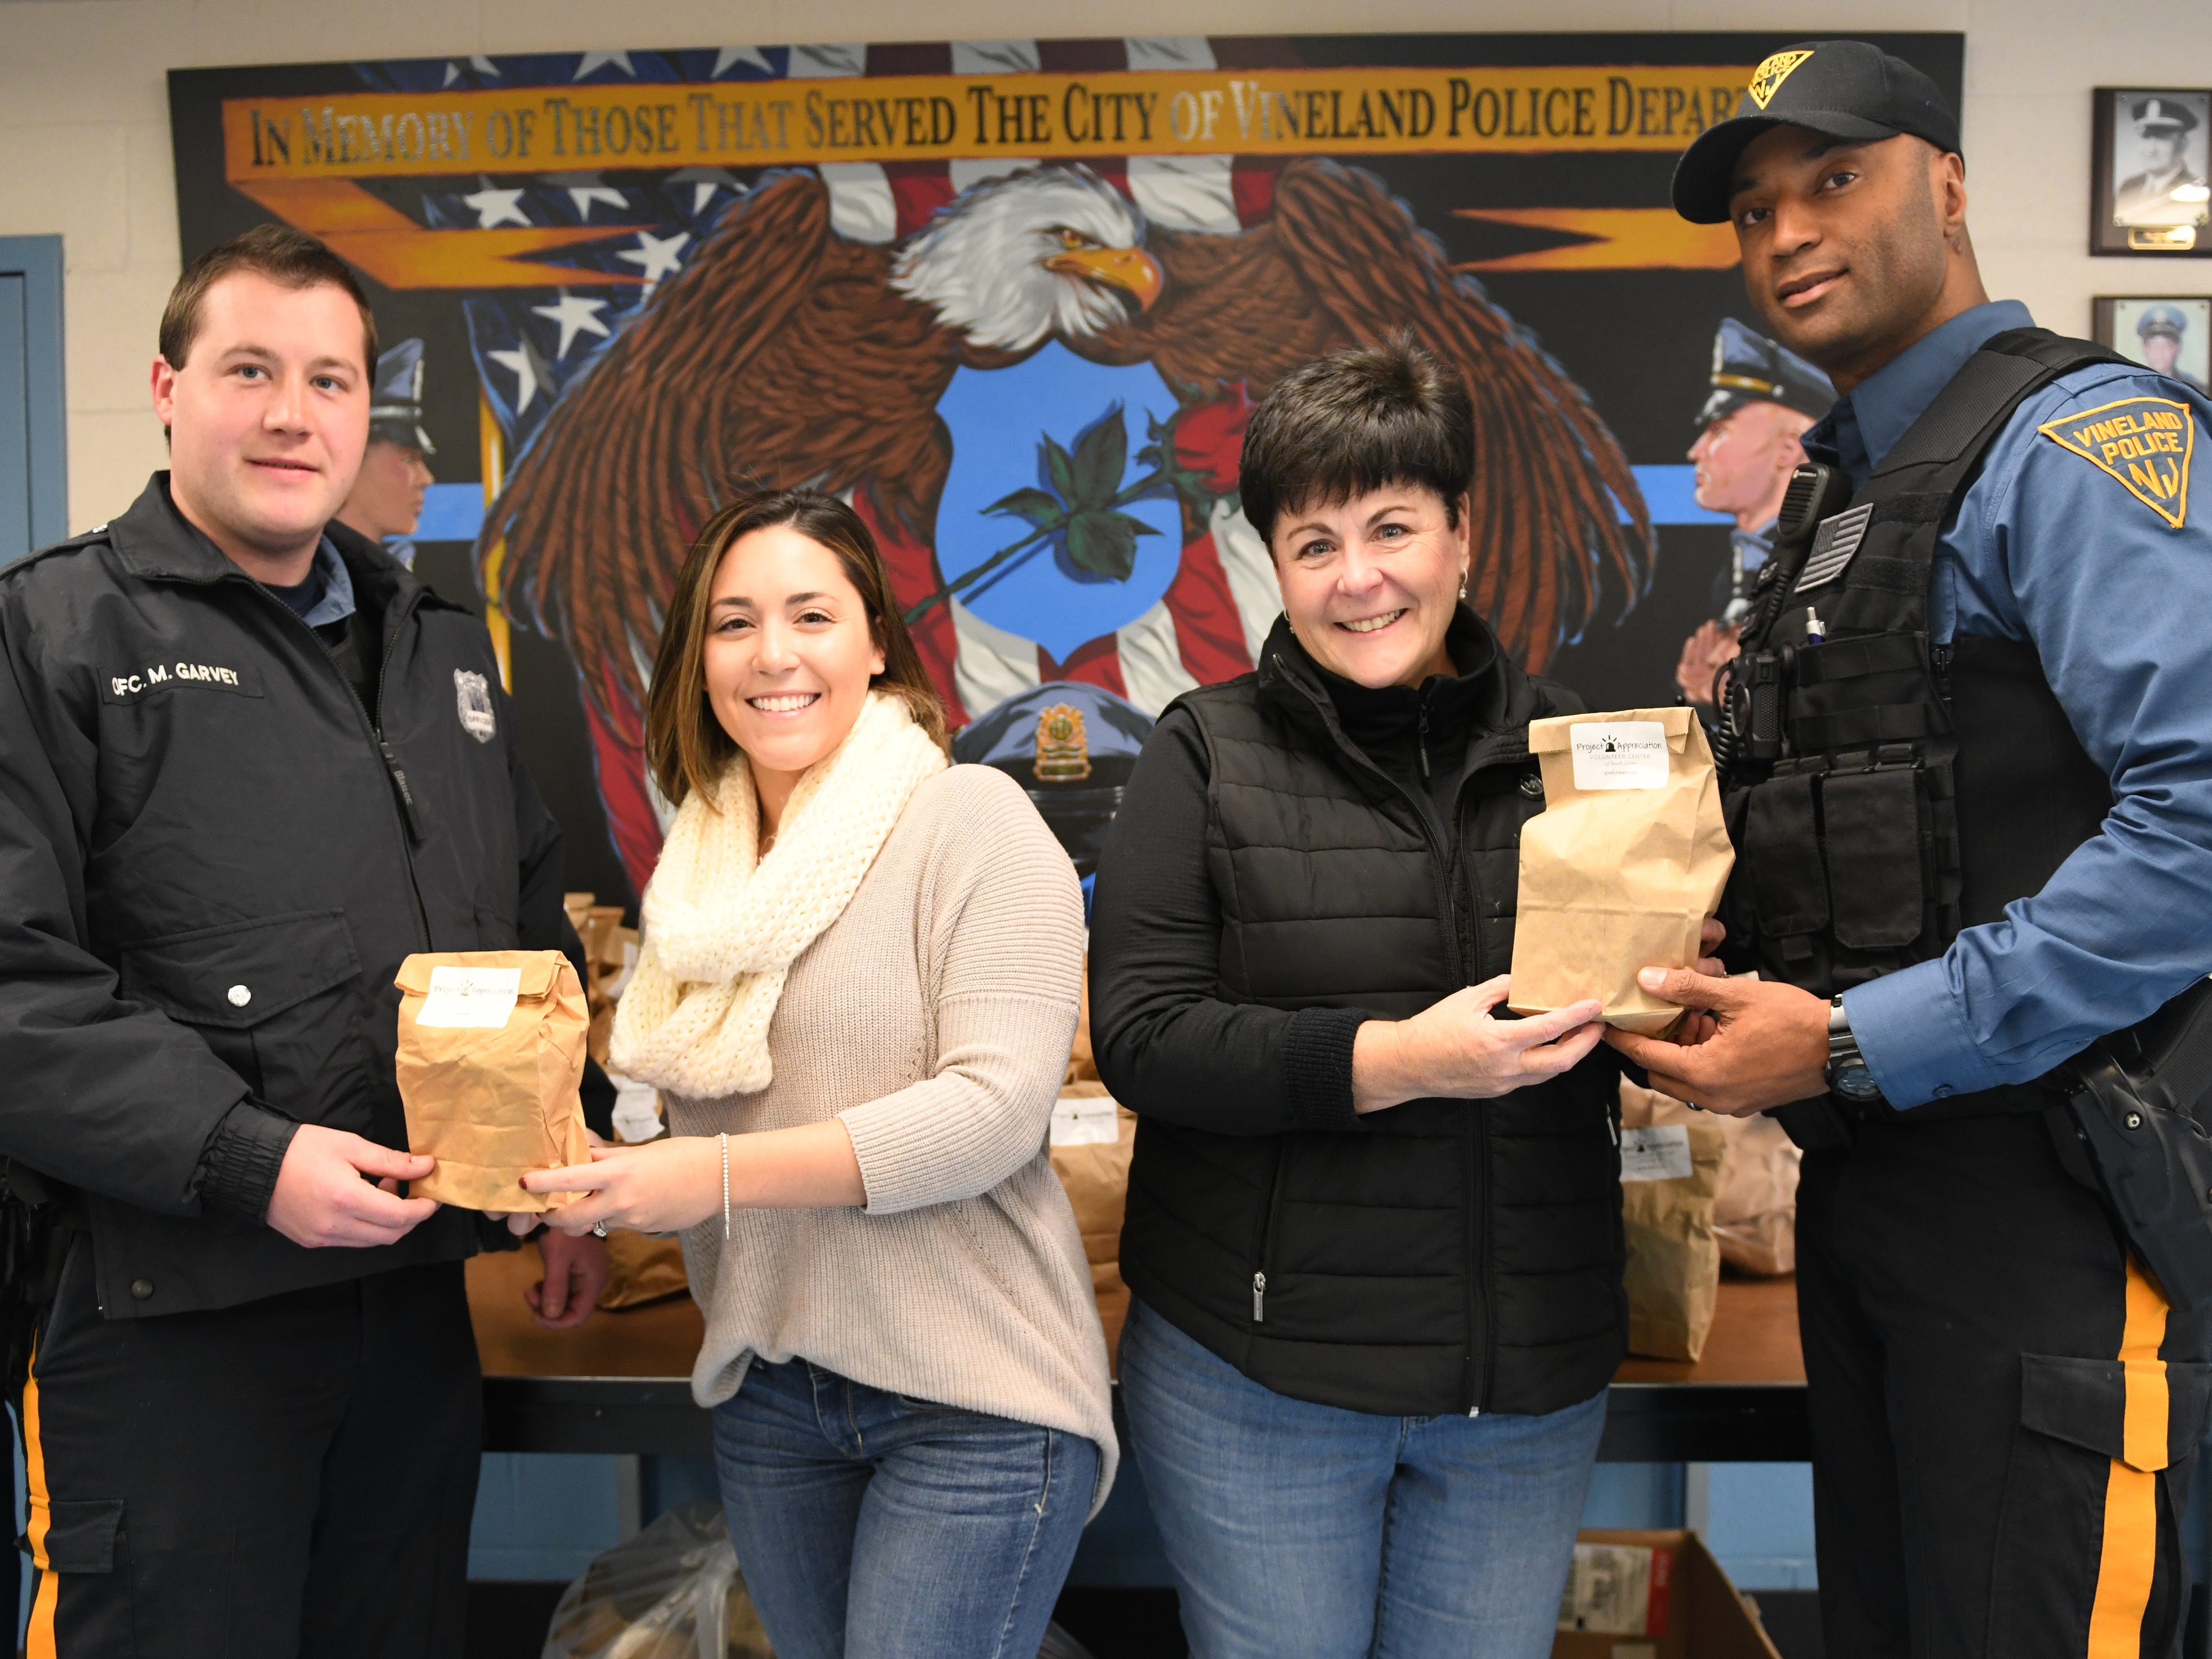 From left to right, Officer Matthew Garvey receives a appreciation bag from Volunteer Center of South Jersey staff member Gabriella Smick while Project Appreciation program coordinator Maria Velez gives Officer Dion Colvin a appreciation bag.